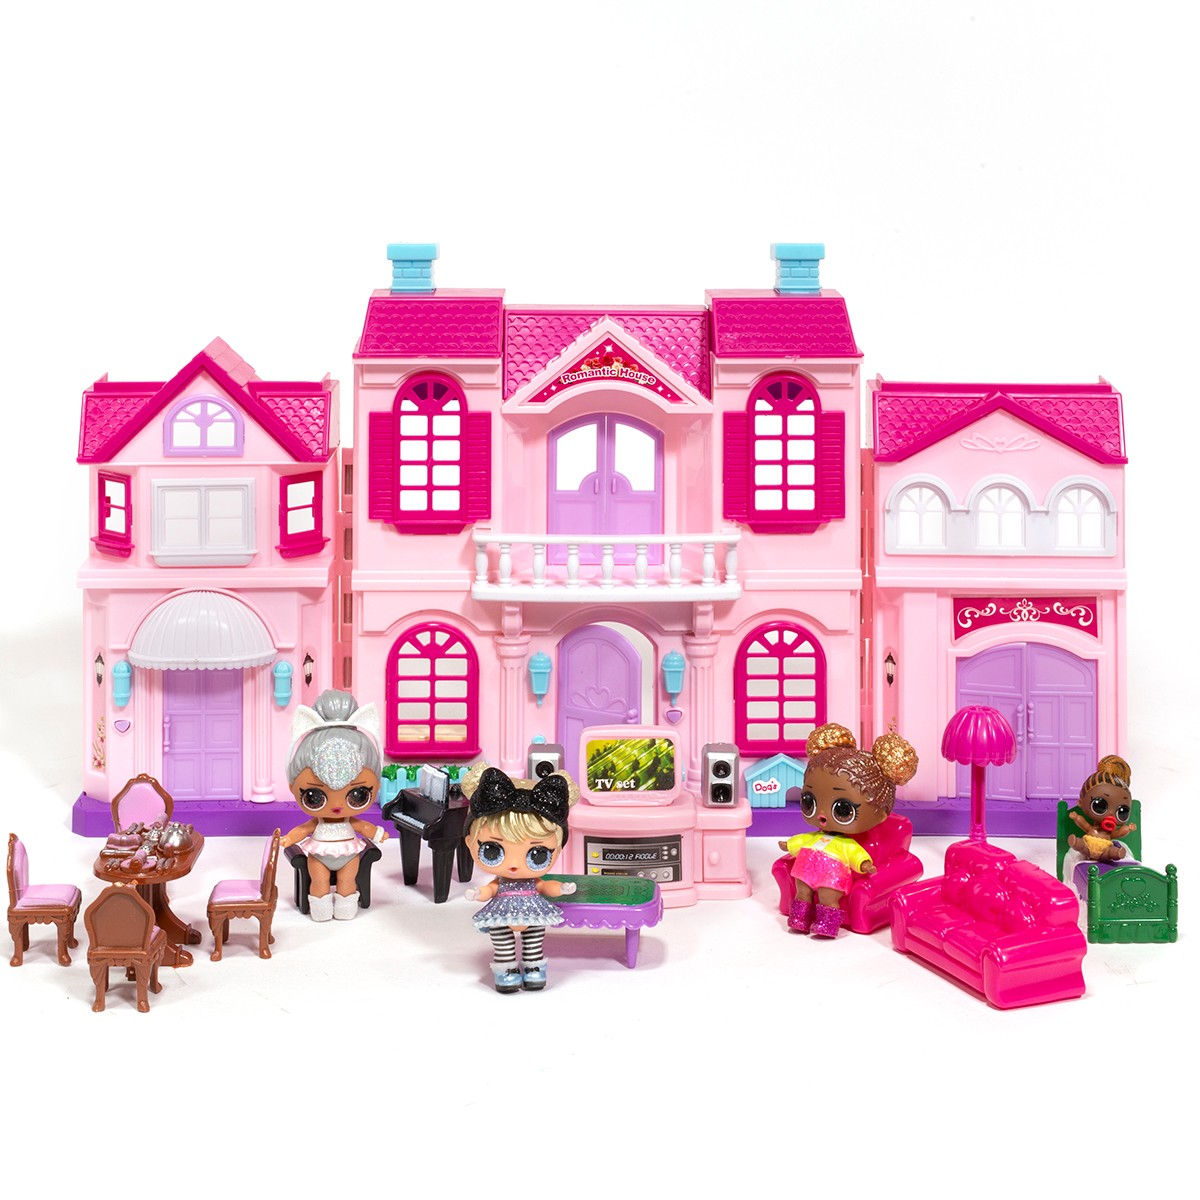 Ihubdeal My Sweet Surprise 18 Piece Dollhouse Enchanted Home Lights